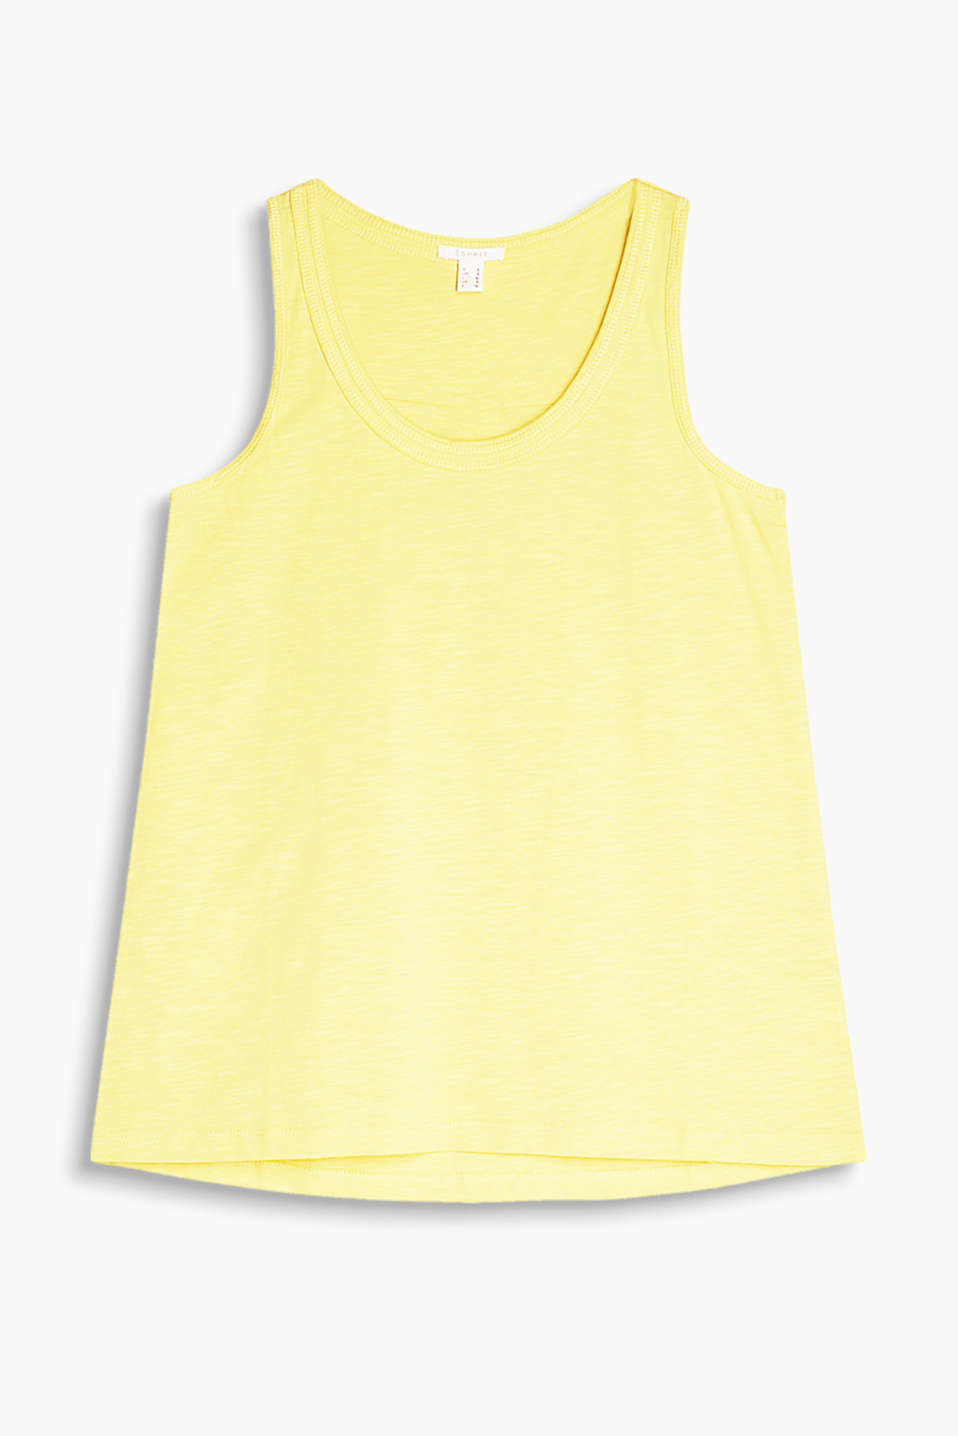 Lightweight and airy: Flared slub jersey top with texture, 100% cotton